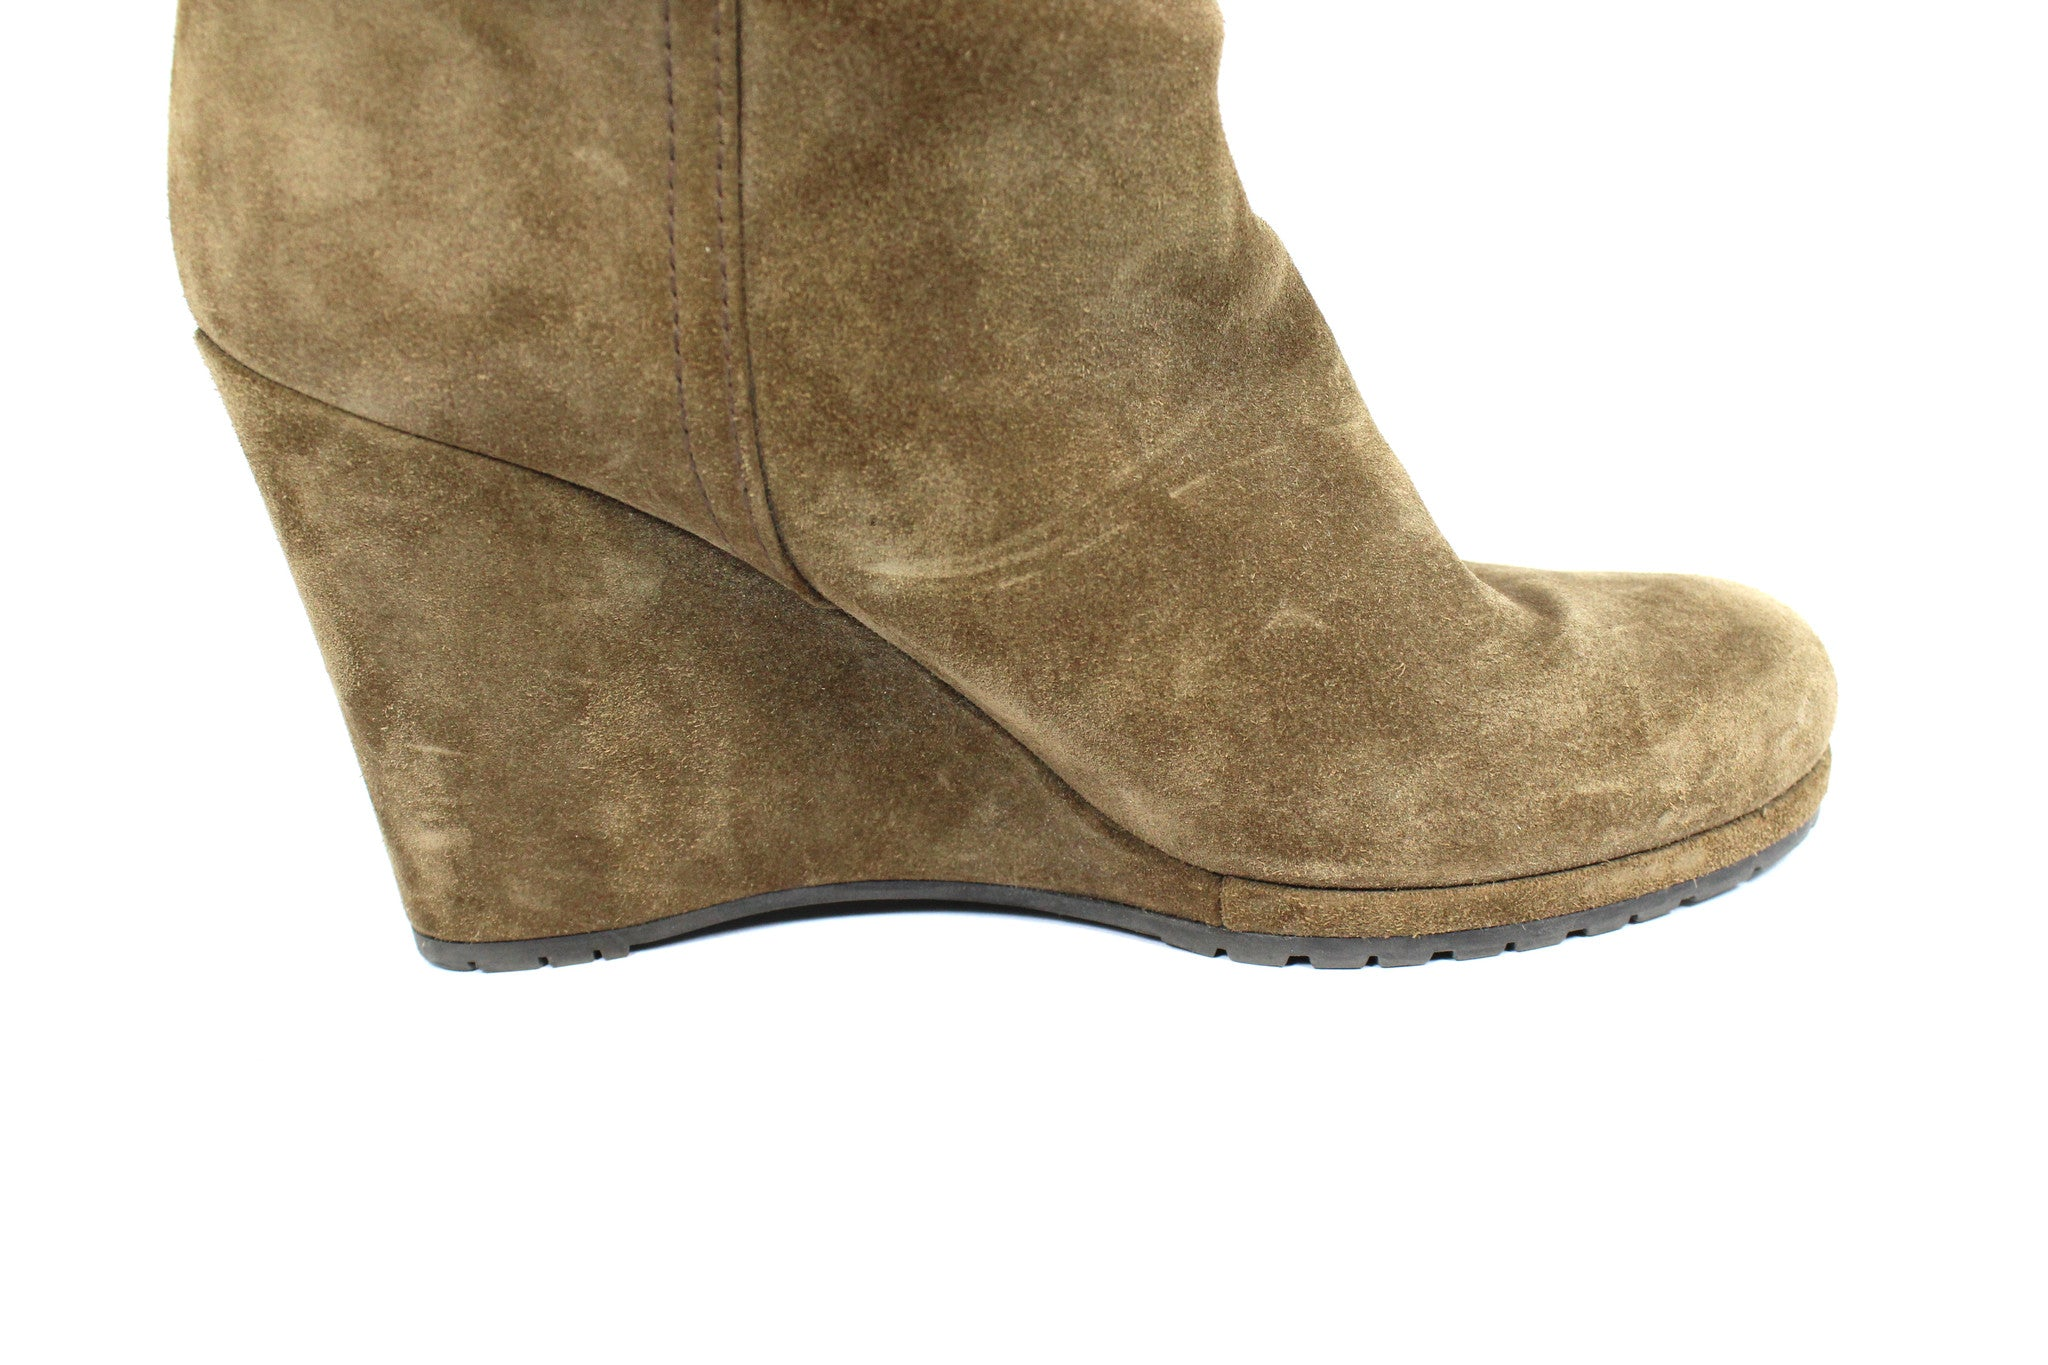 Prada Suede Taupe Wedge Boots (Size 38) - Encore Consignment - 6